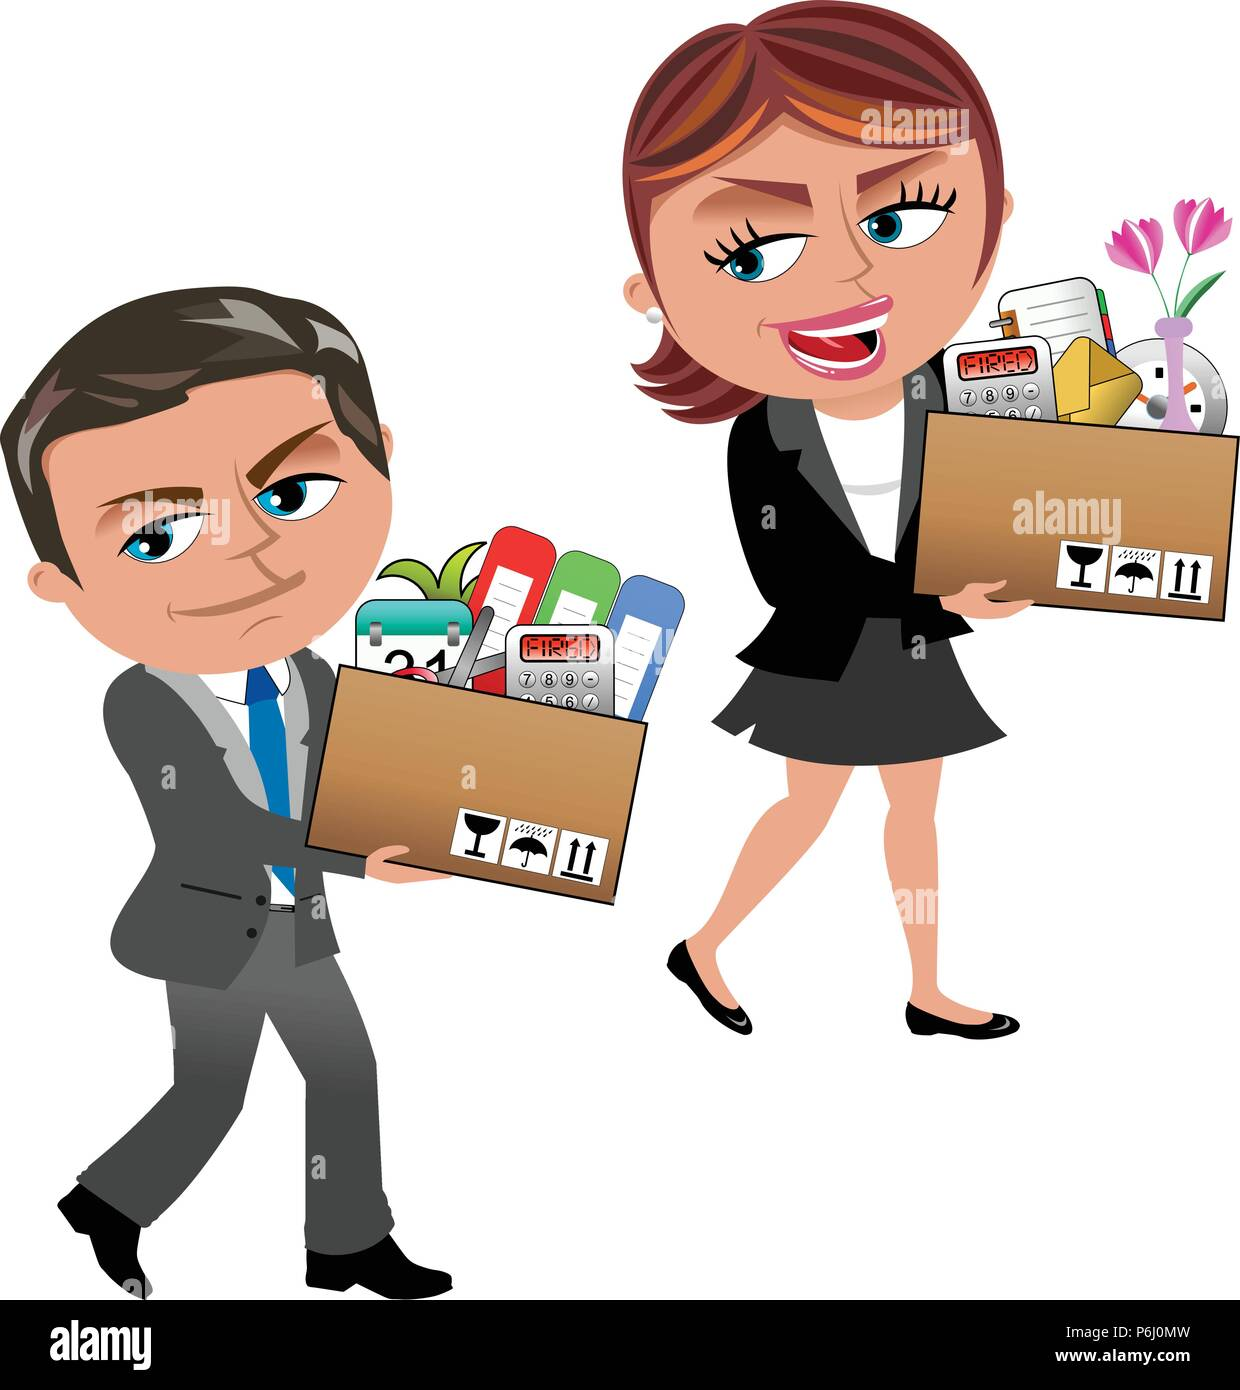 Fired Cartoon businesswoman and businessman carrying a box of personal items isolated on white - Stock Vector